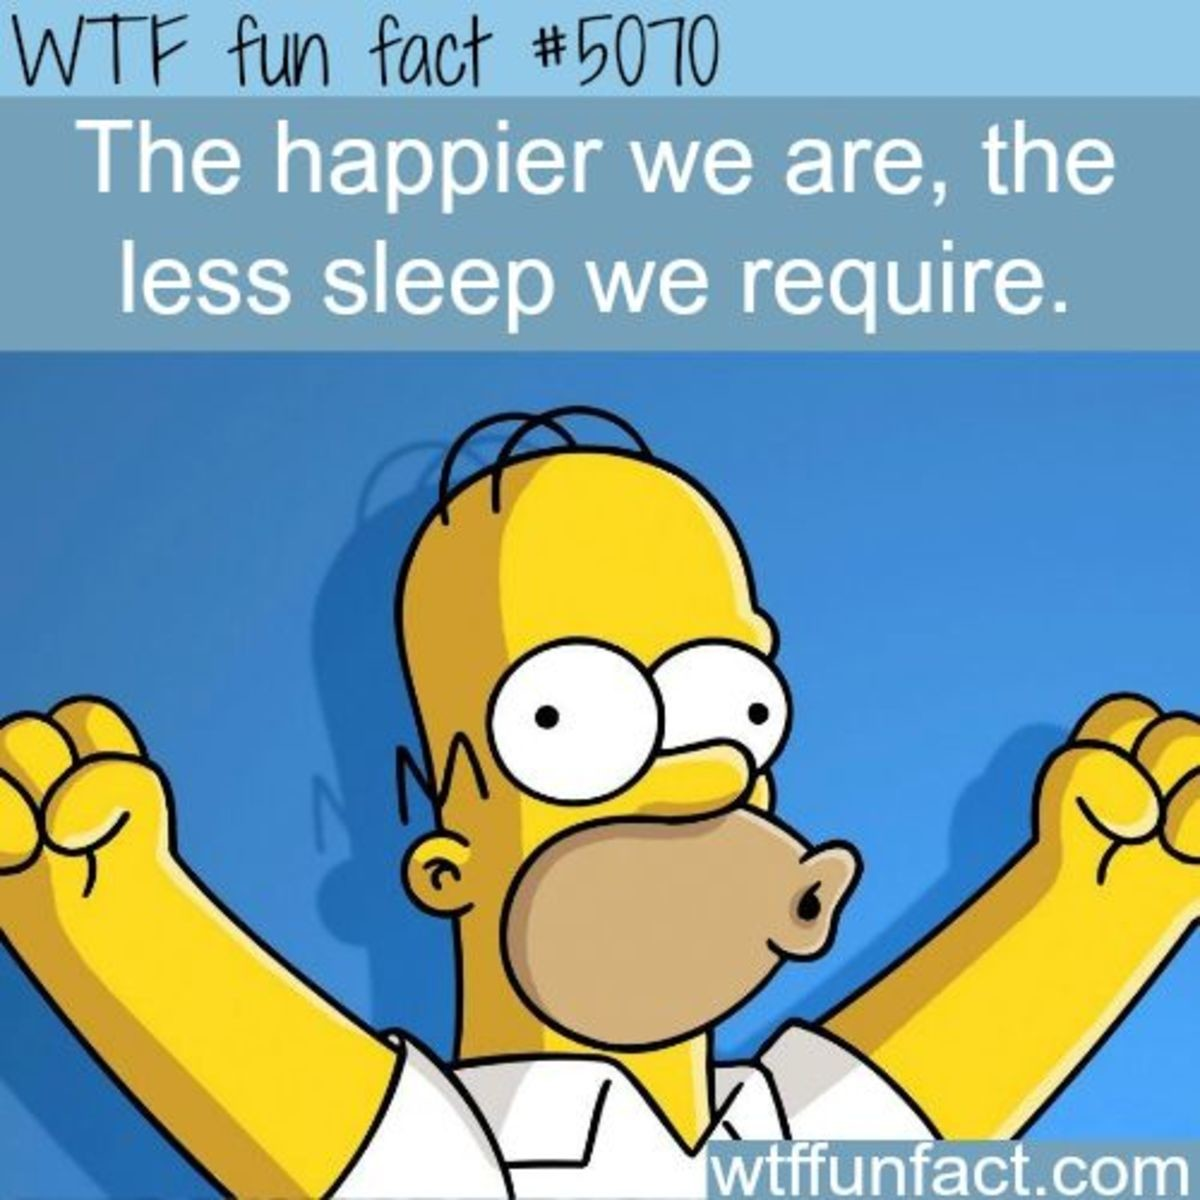 Sleep All Day. .. that's ... when I had my suicide attempt I was sleeping maybe 6 hours every 4 days